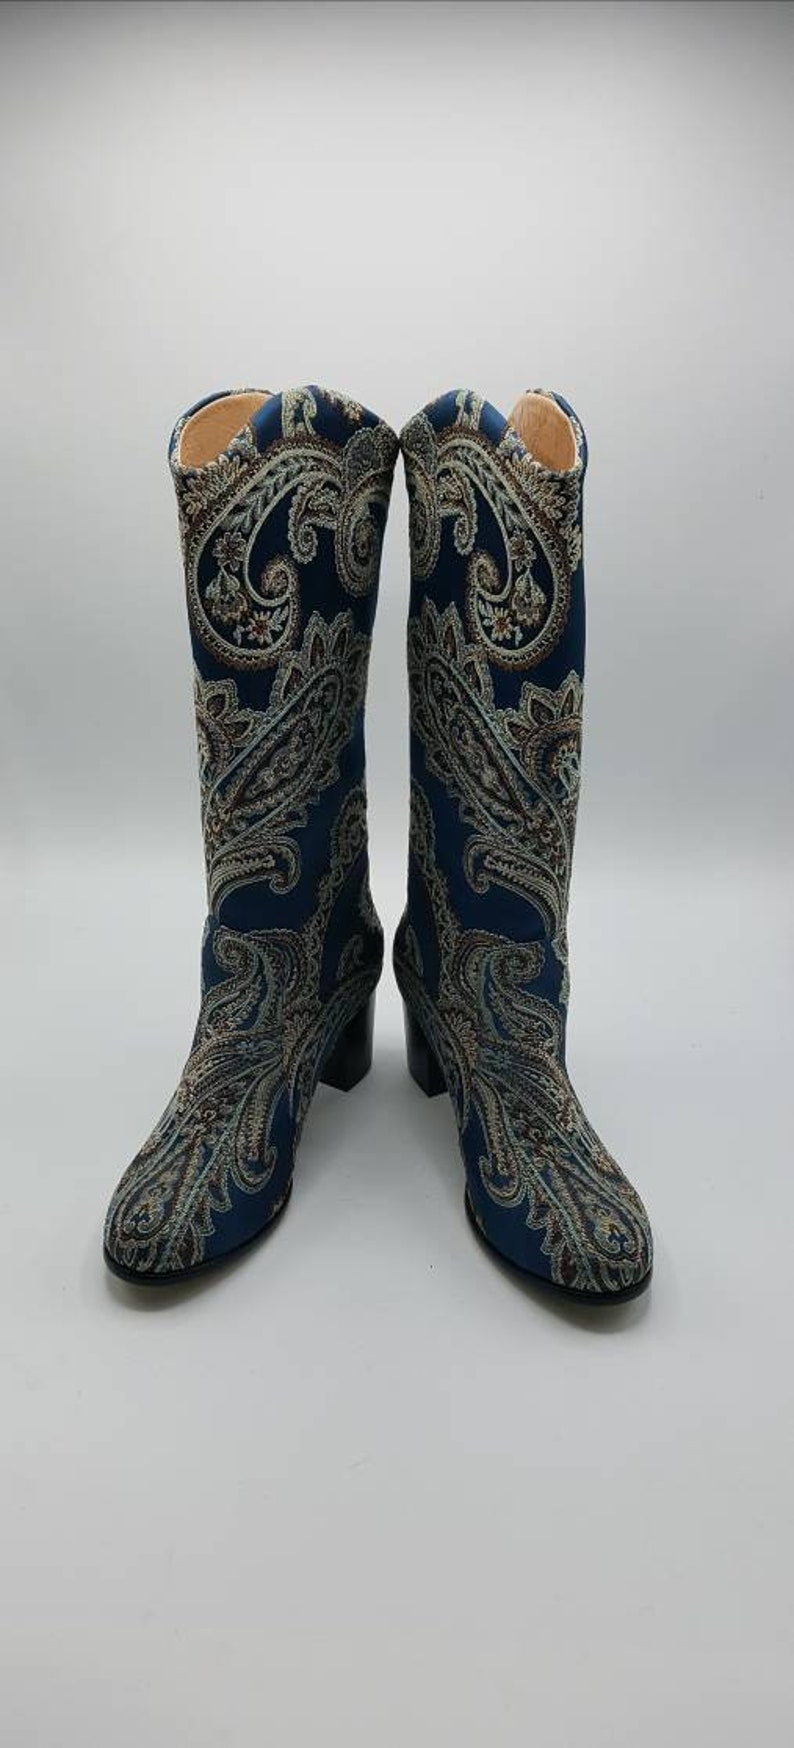 FREE SHIPPING Custom Boots Chic Knee High Leather Women Boots